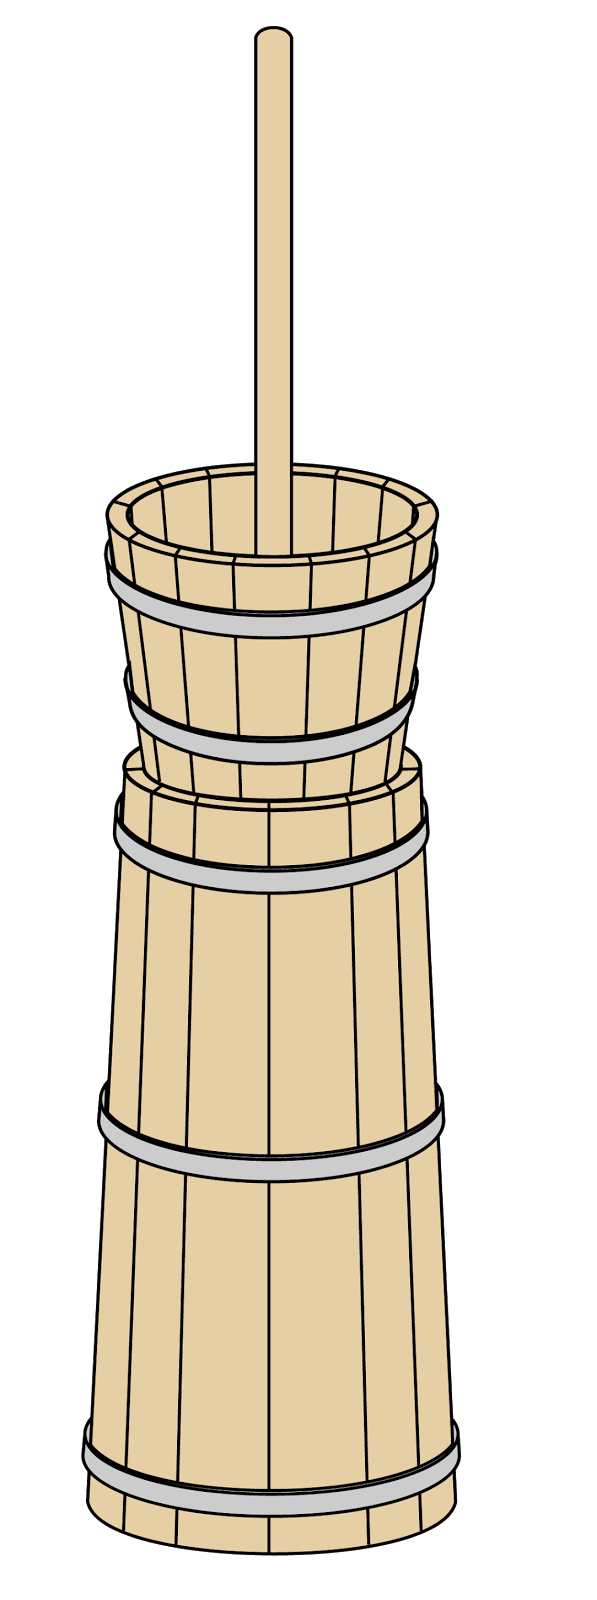 Butter clipart butter churn. Coconut production of a